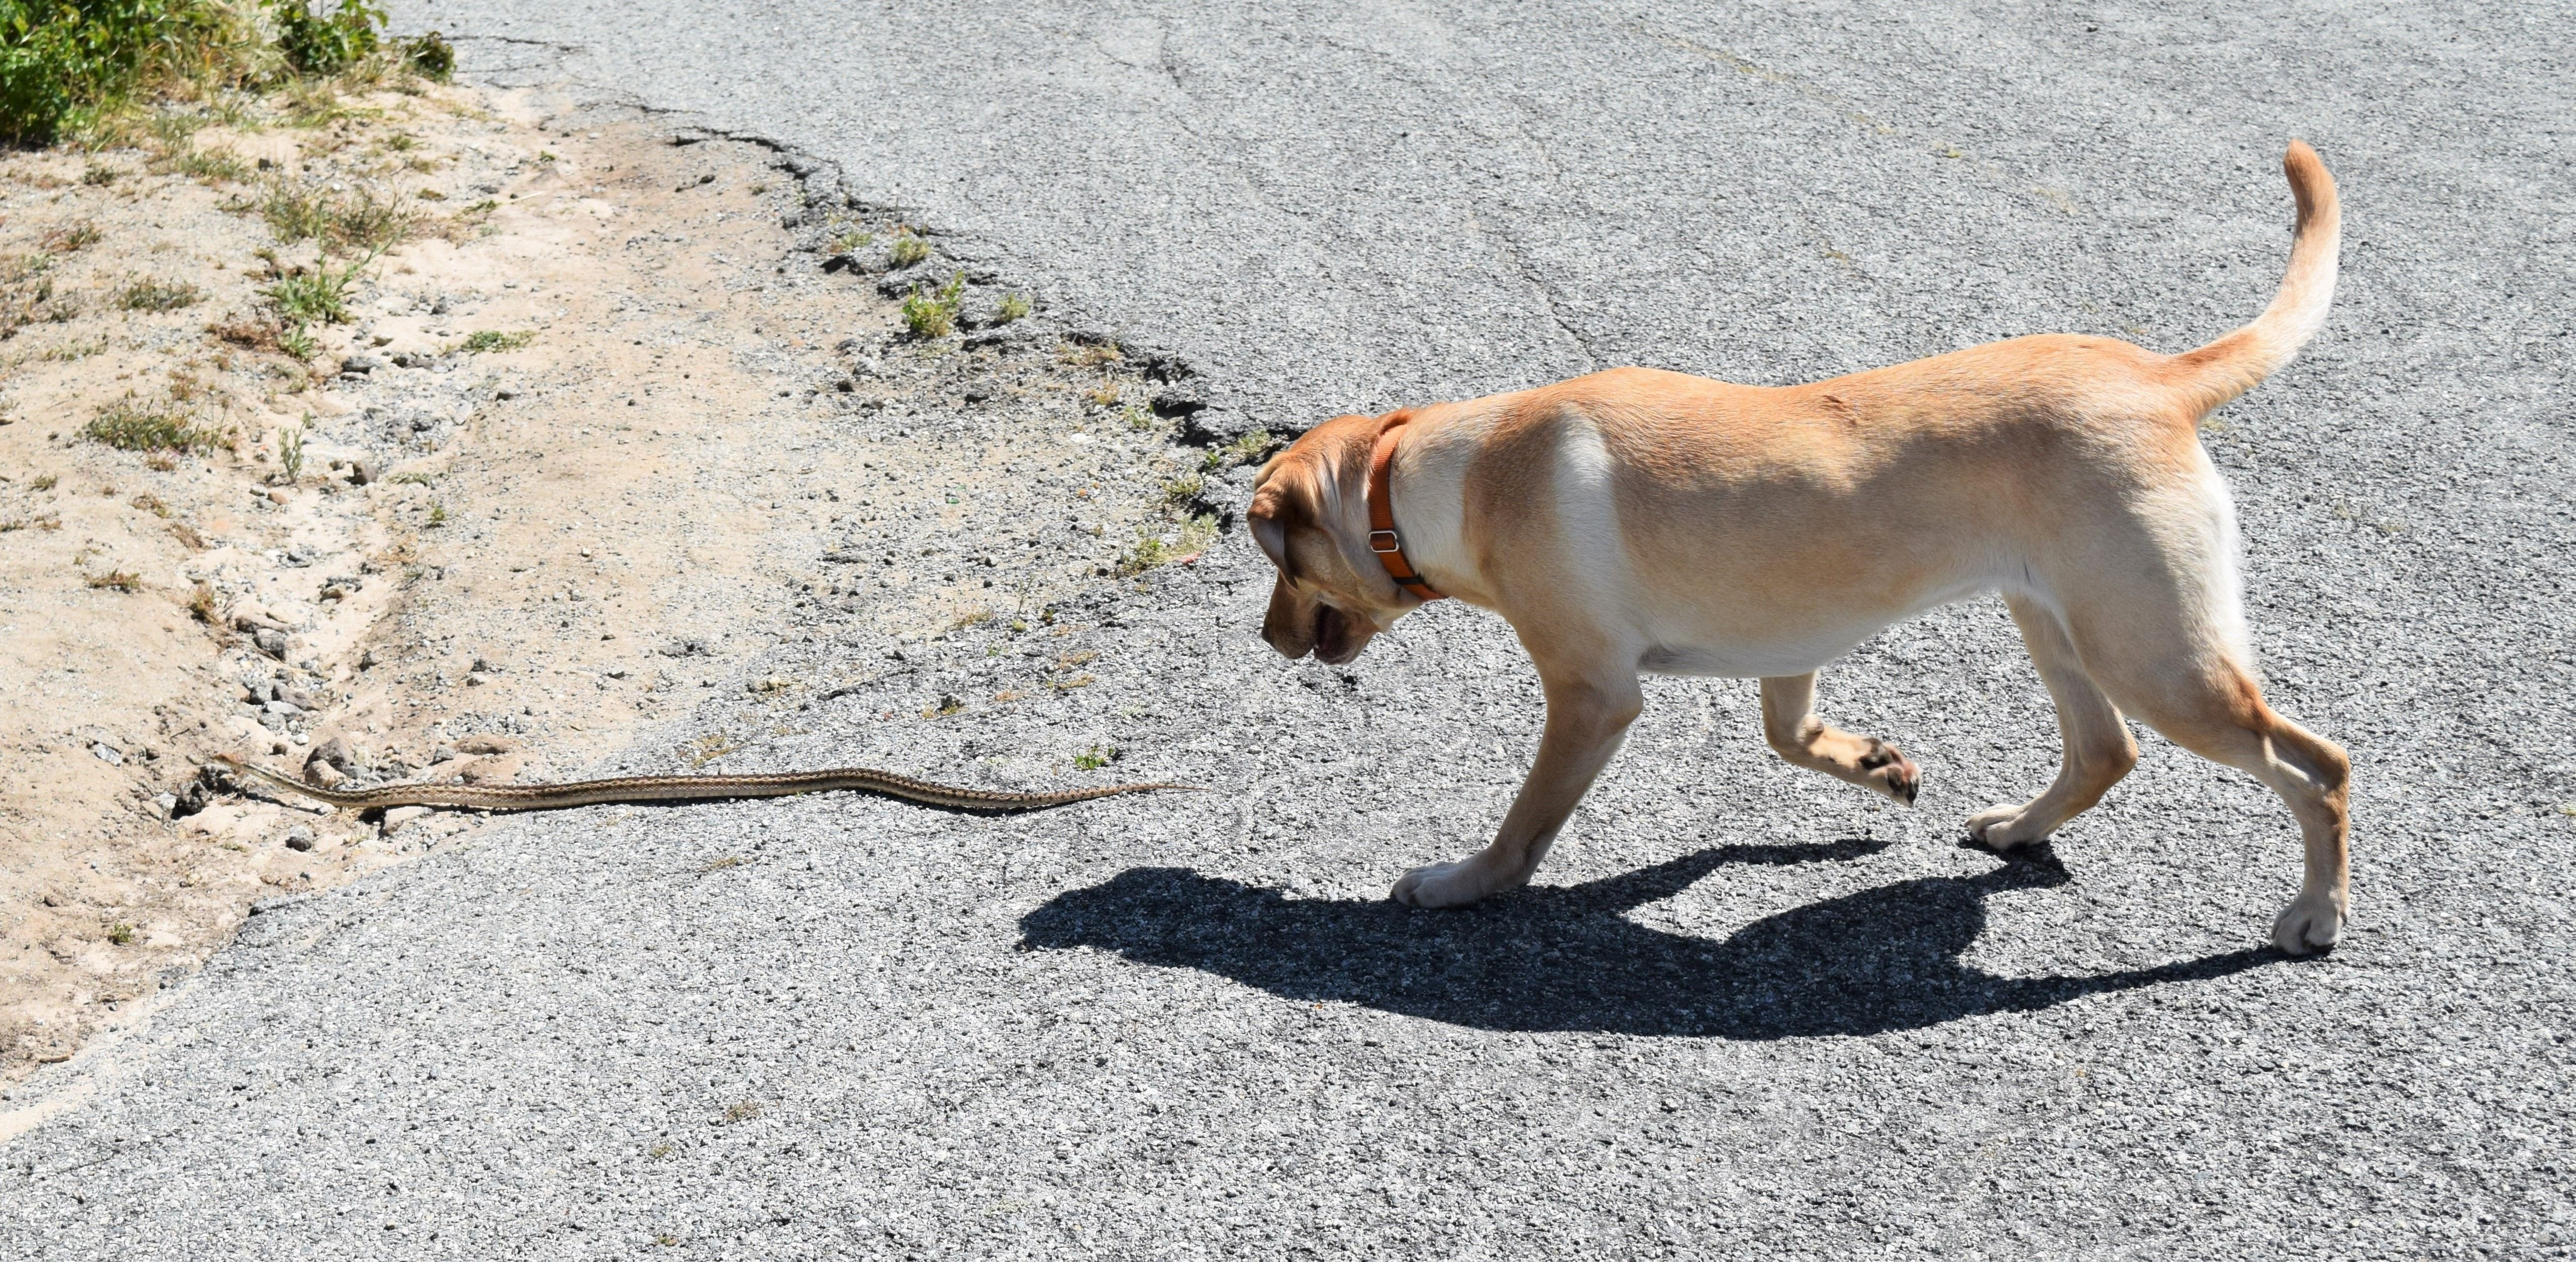 A labrador dog chases a gopher snake in the hills of Monterey,  California. | Source: Shutterstock